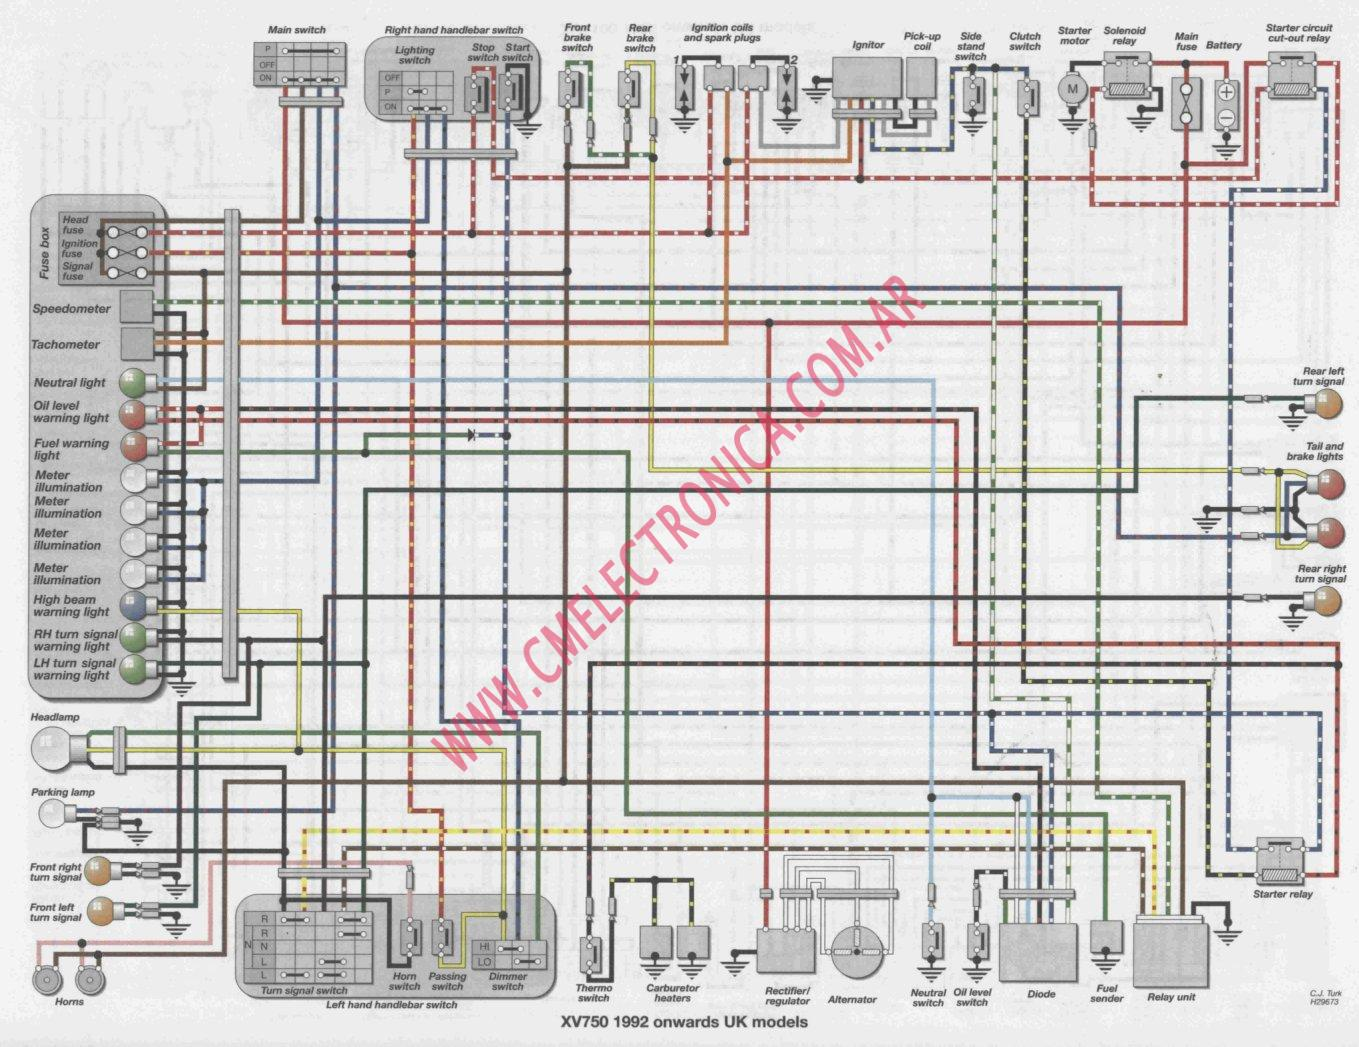 Yamaha 89 Wiring Diagram Diagrams Moto 4 Free Engine Image For User 1989 Warrior 350 Atv